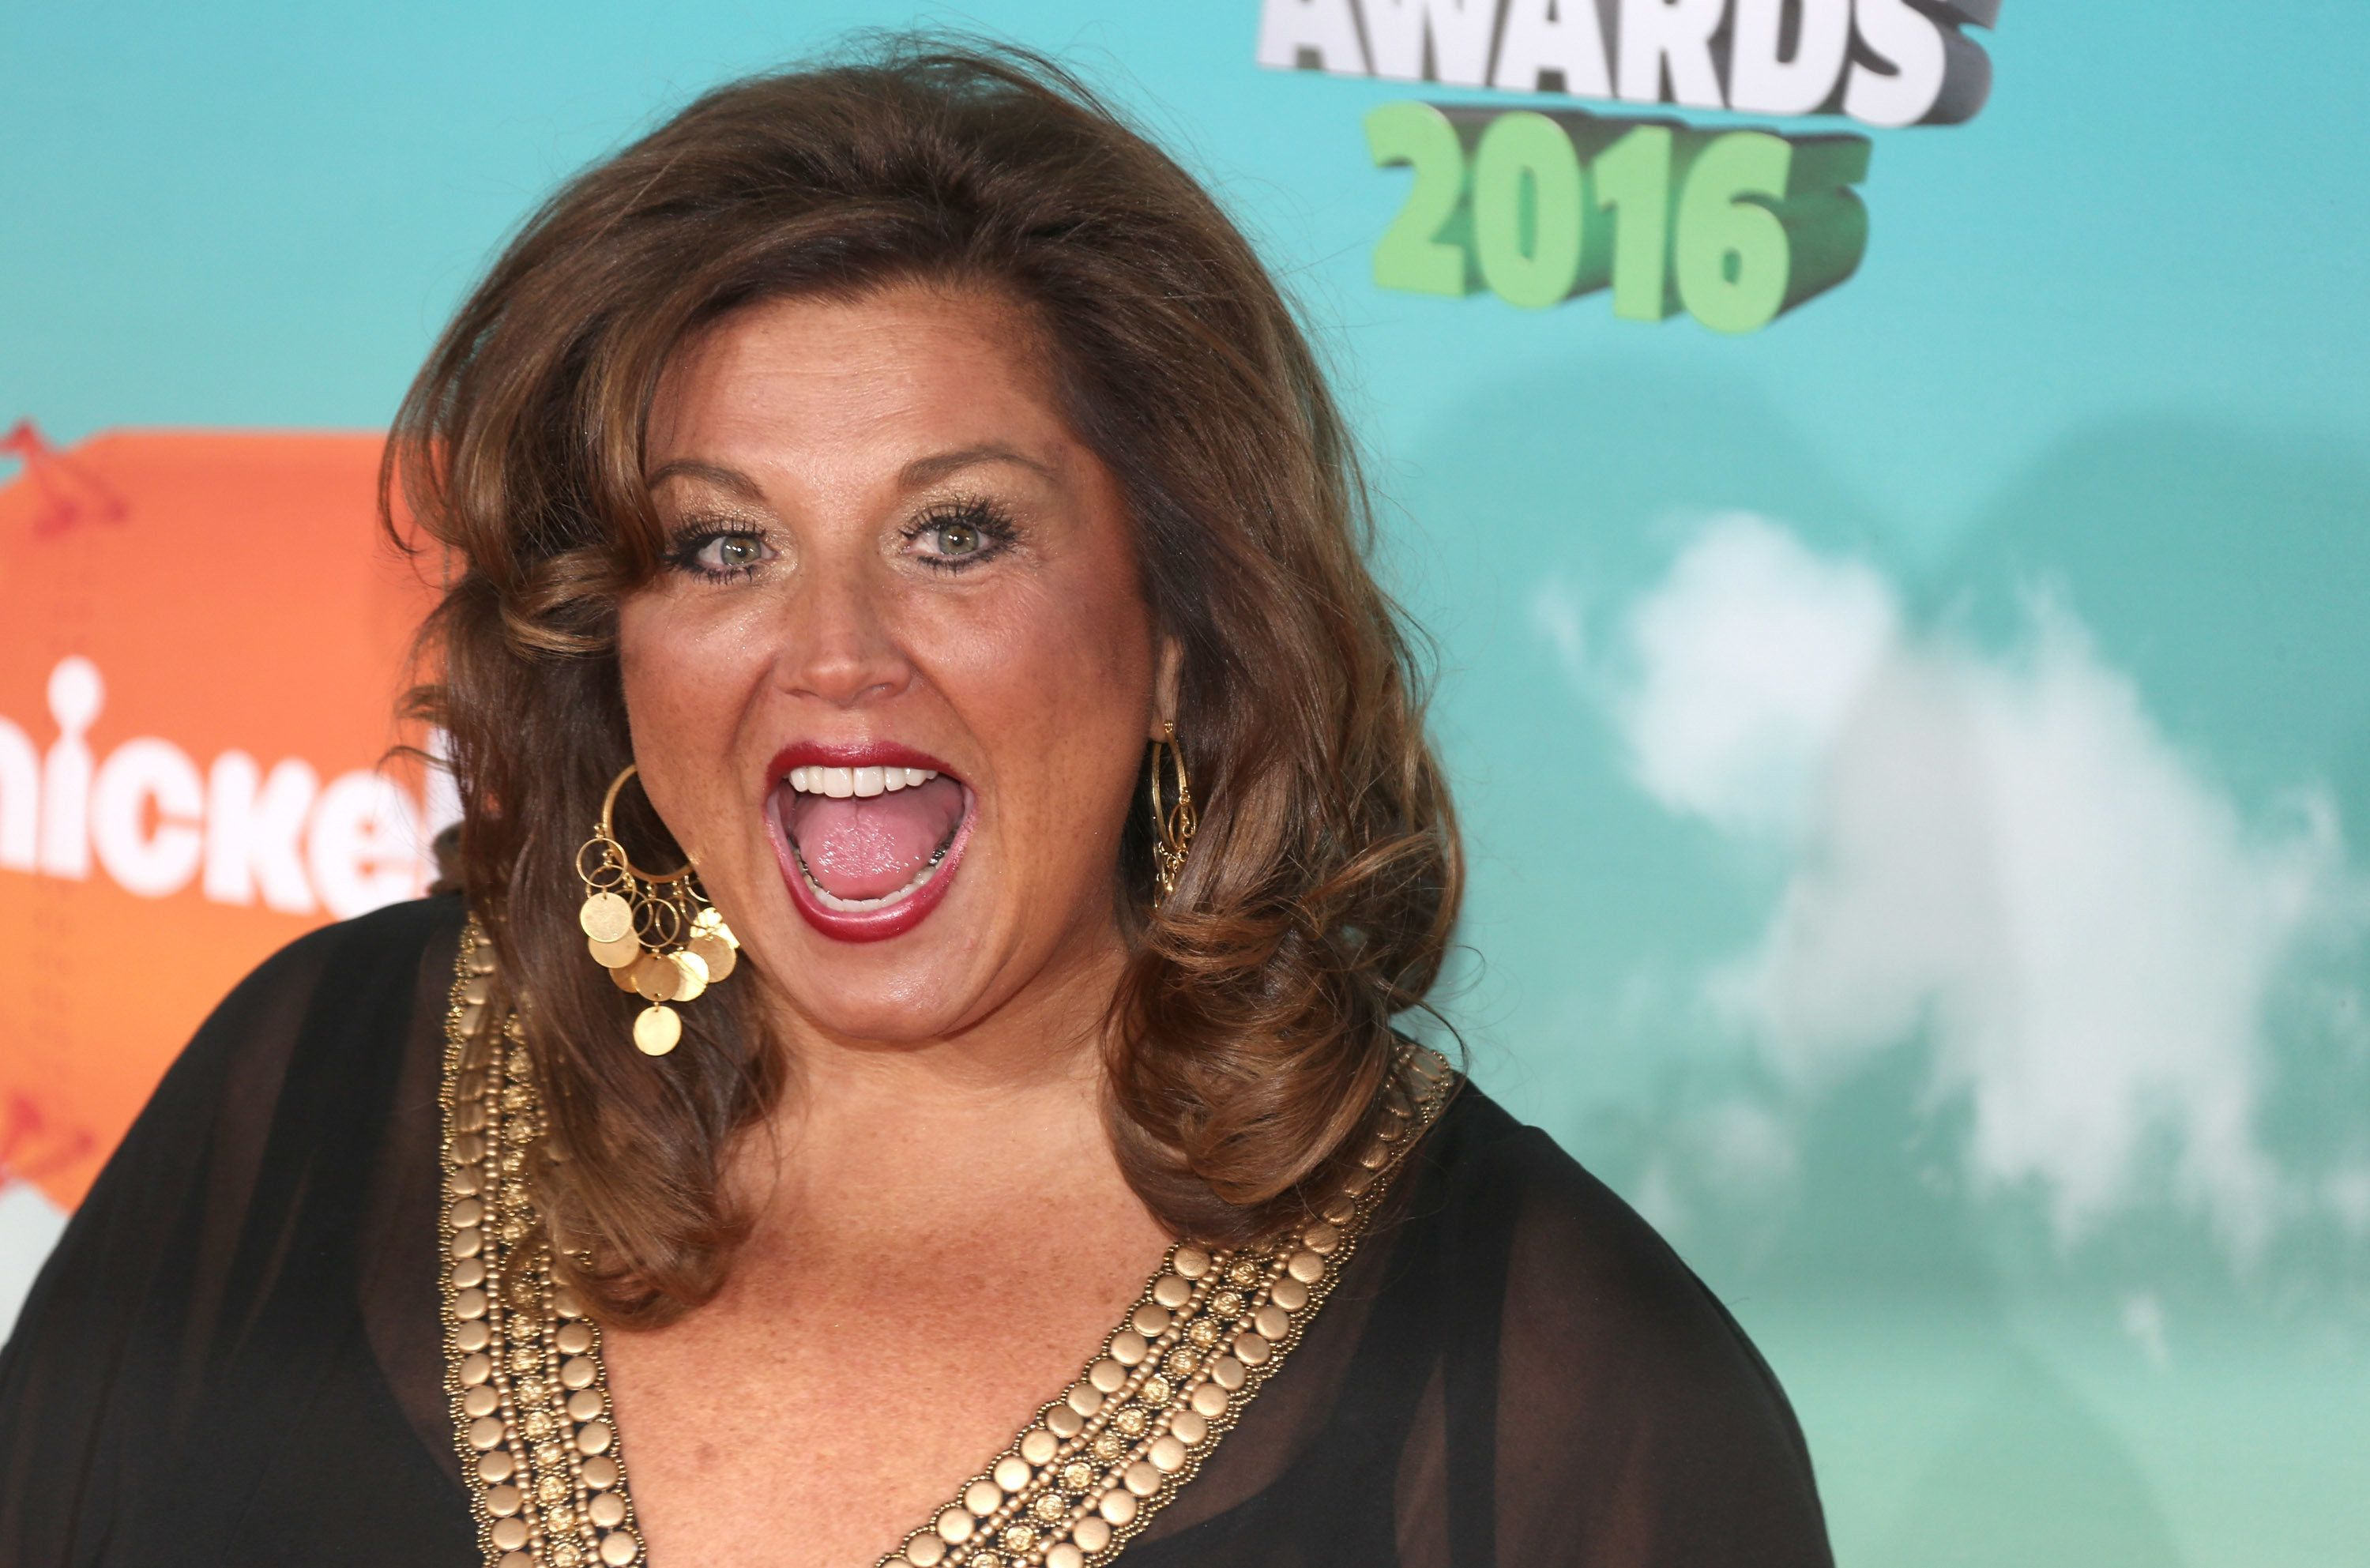 'Dance Moms' Star Abby Lee Miller Sentenced To One Year In Prison For